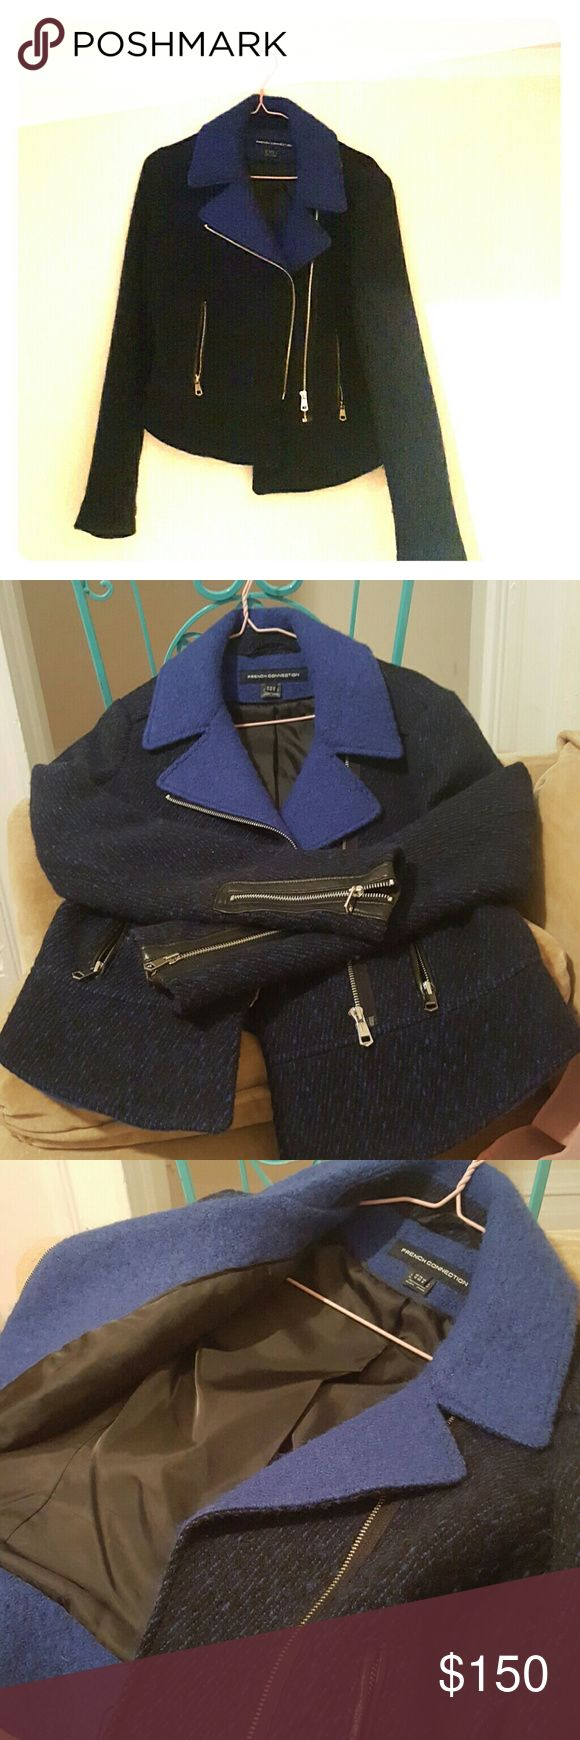 Thick Chic Blazer Wool, leather and polyester French Connection Blazer is a MUST for this winter. Keeps you warm without drowning you in length. Sassy leather trimmed zippers and beautiful black and blue layered colors. French Connection Jackets & Coats Blazers